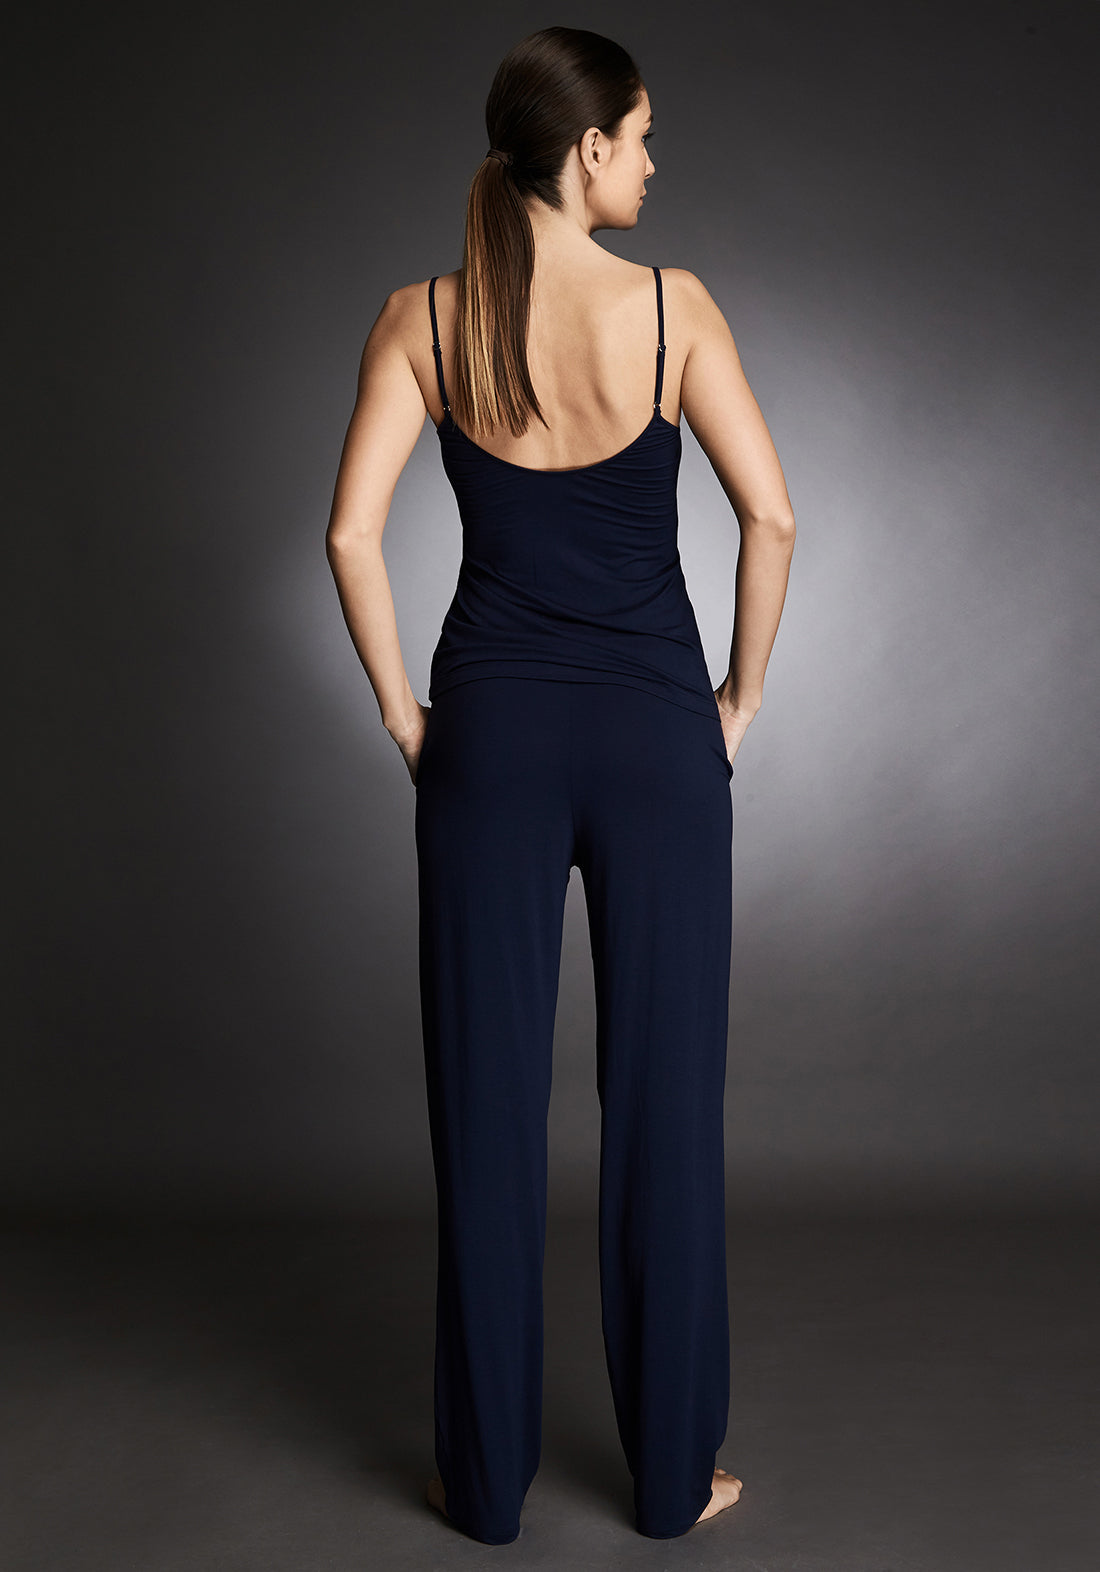 Isolde Long Pants in Navy Blue - I.D. Sarrieri